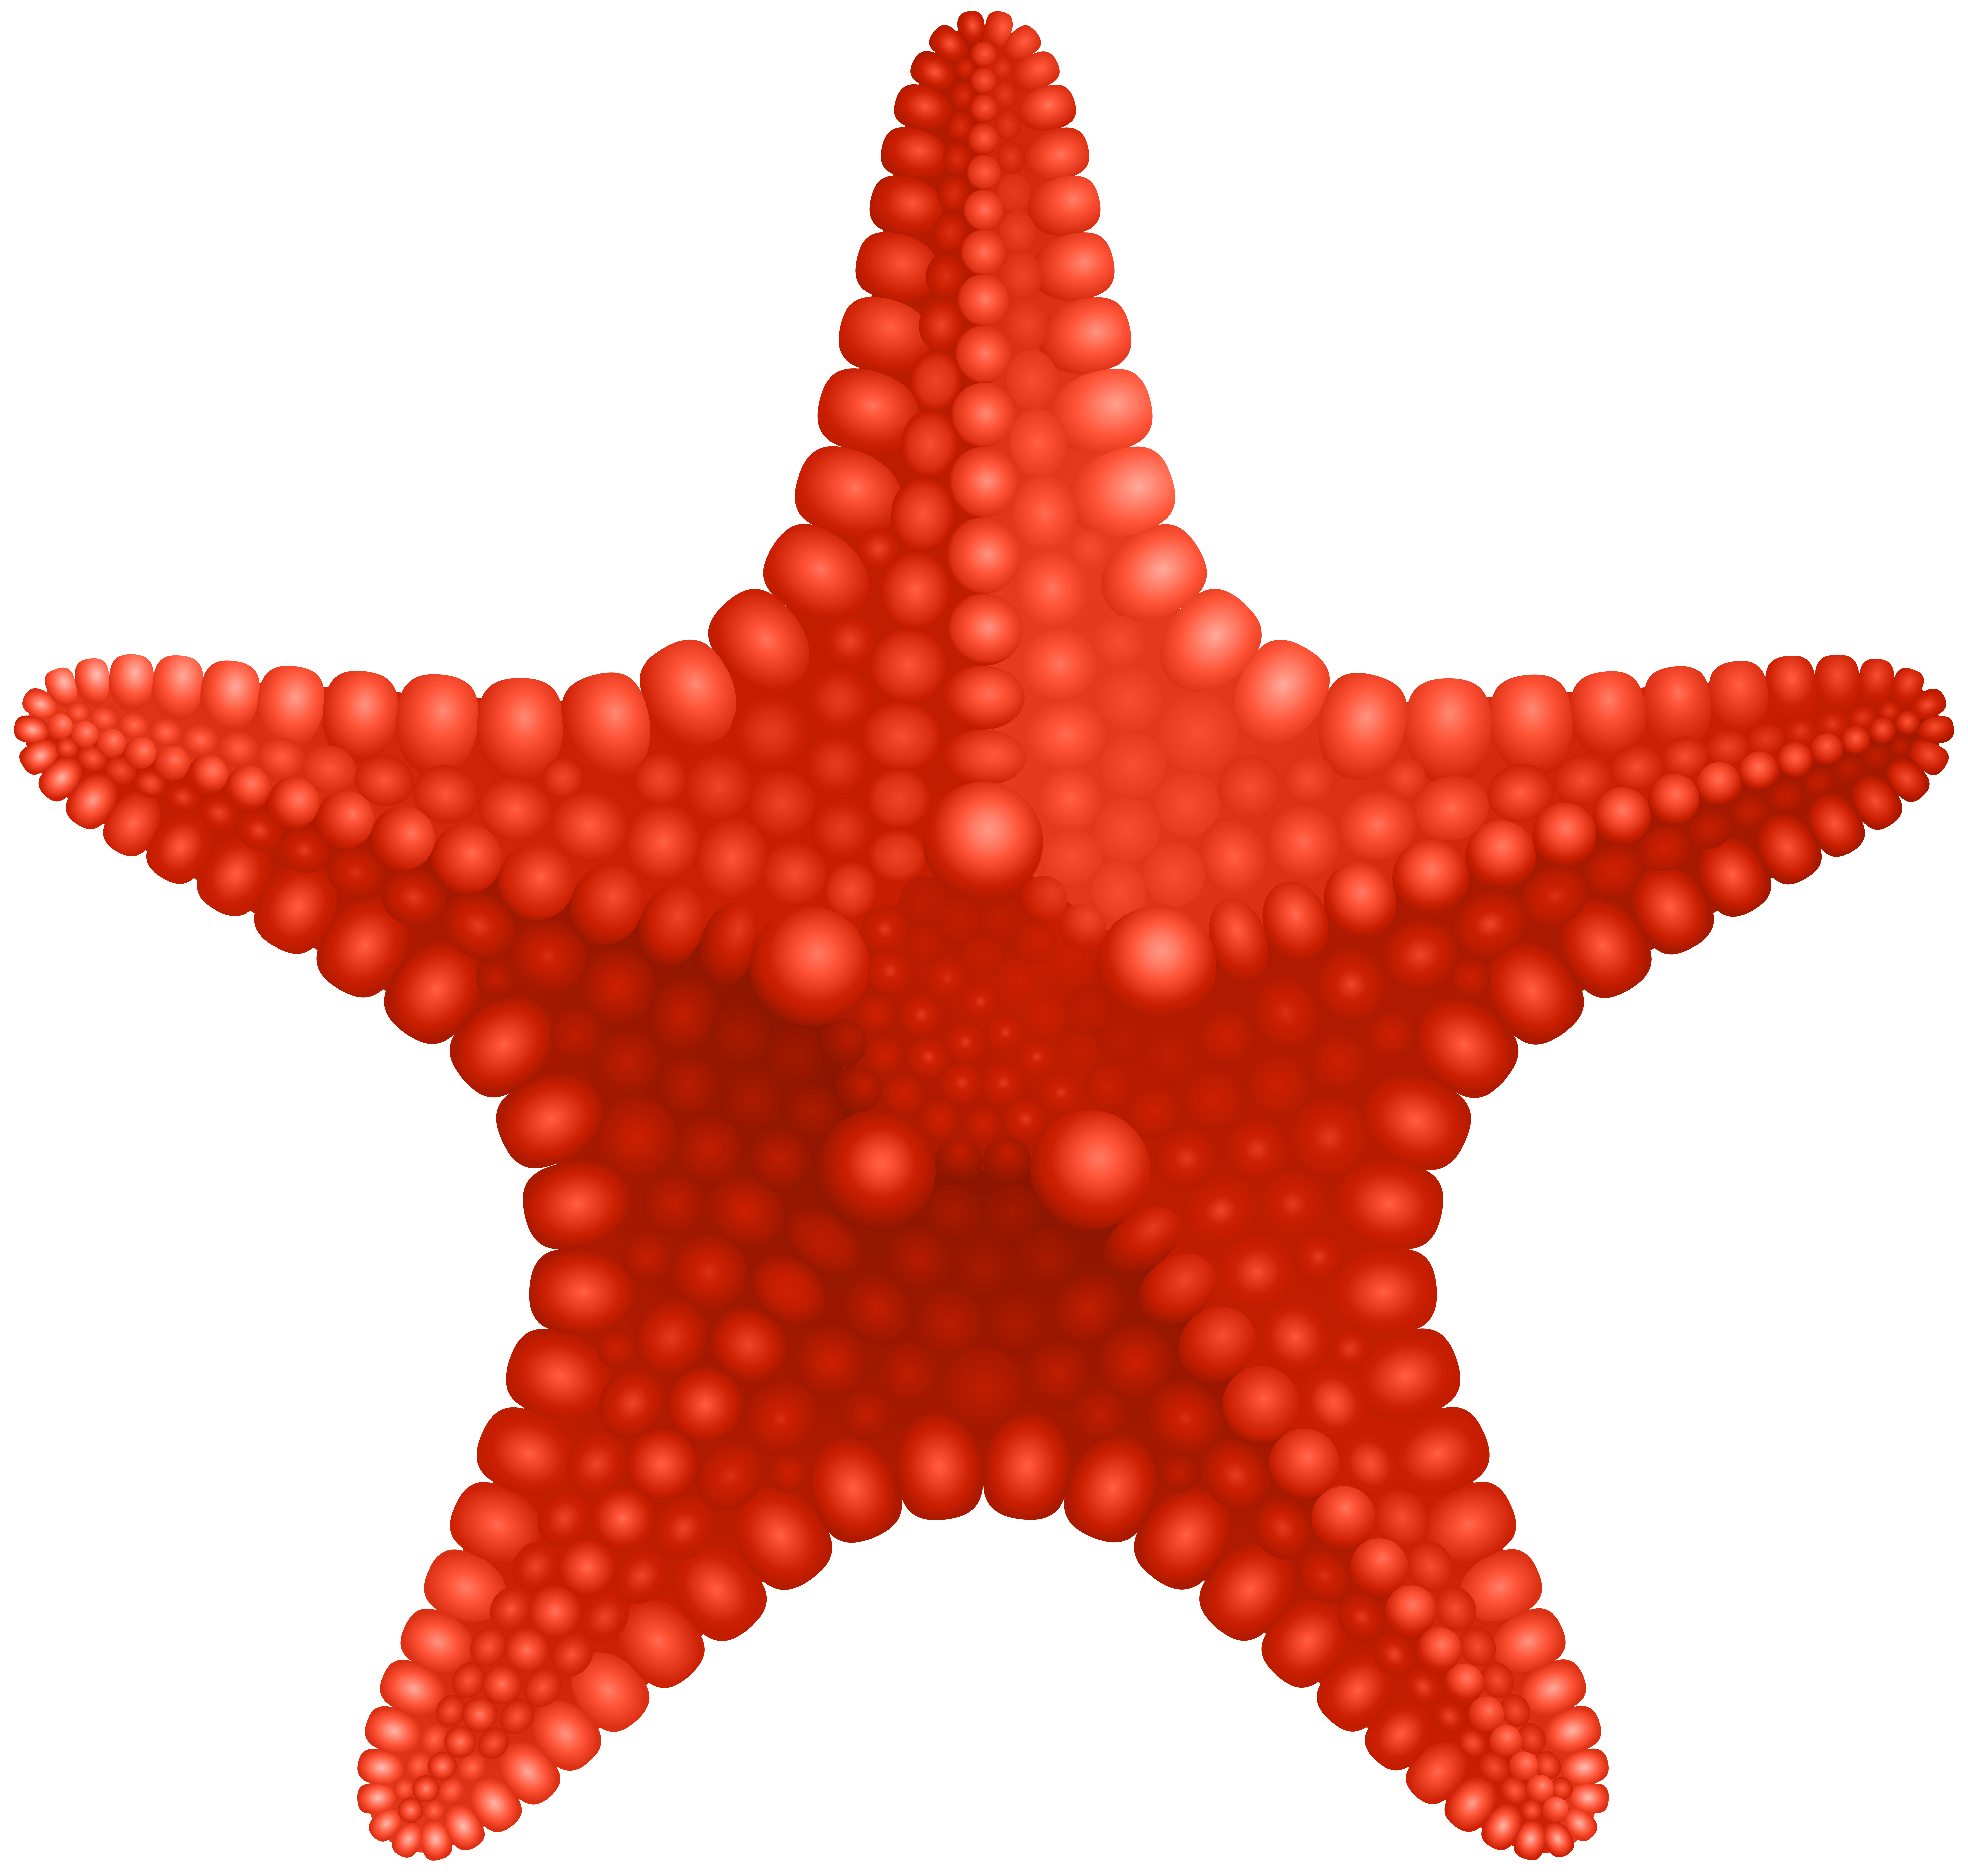 Starfish png. Clip art image gallery